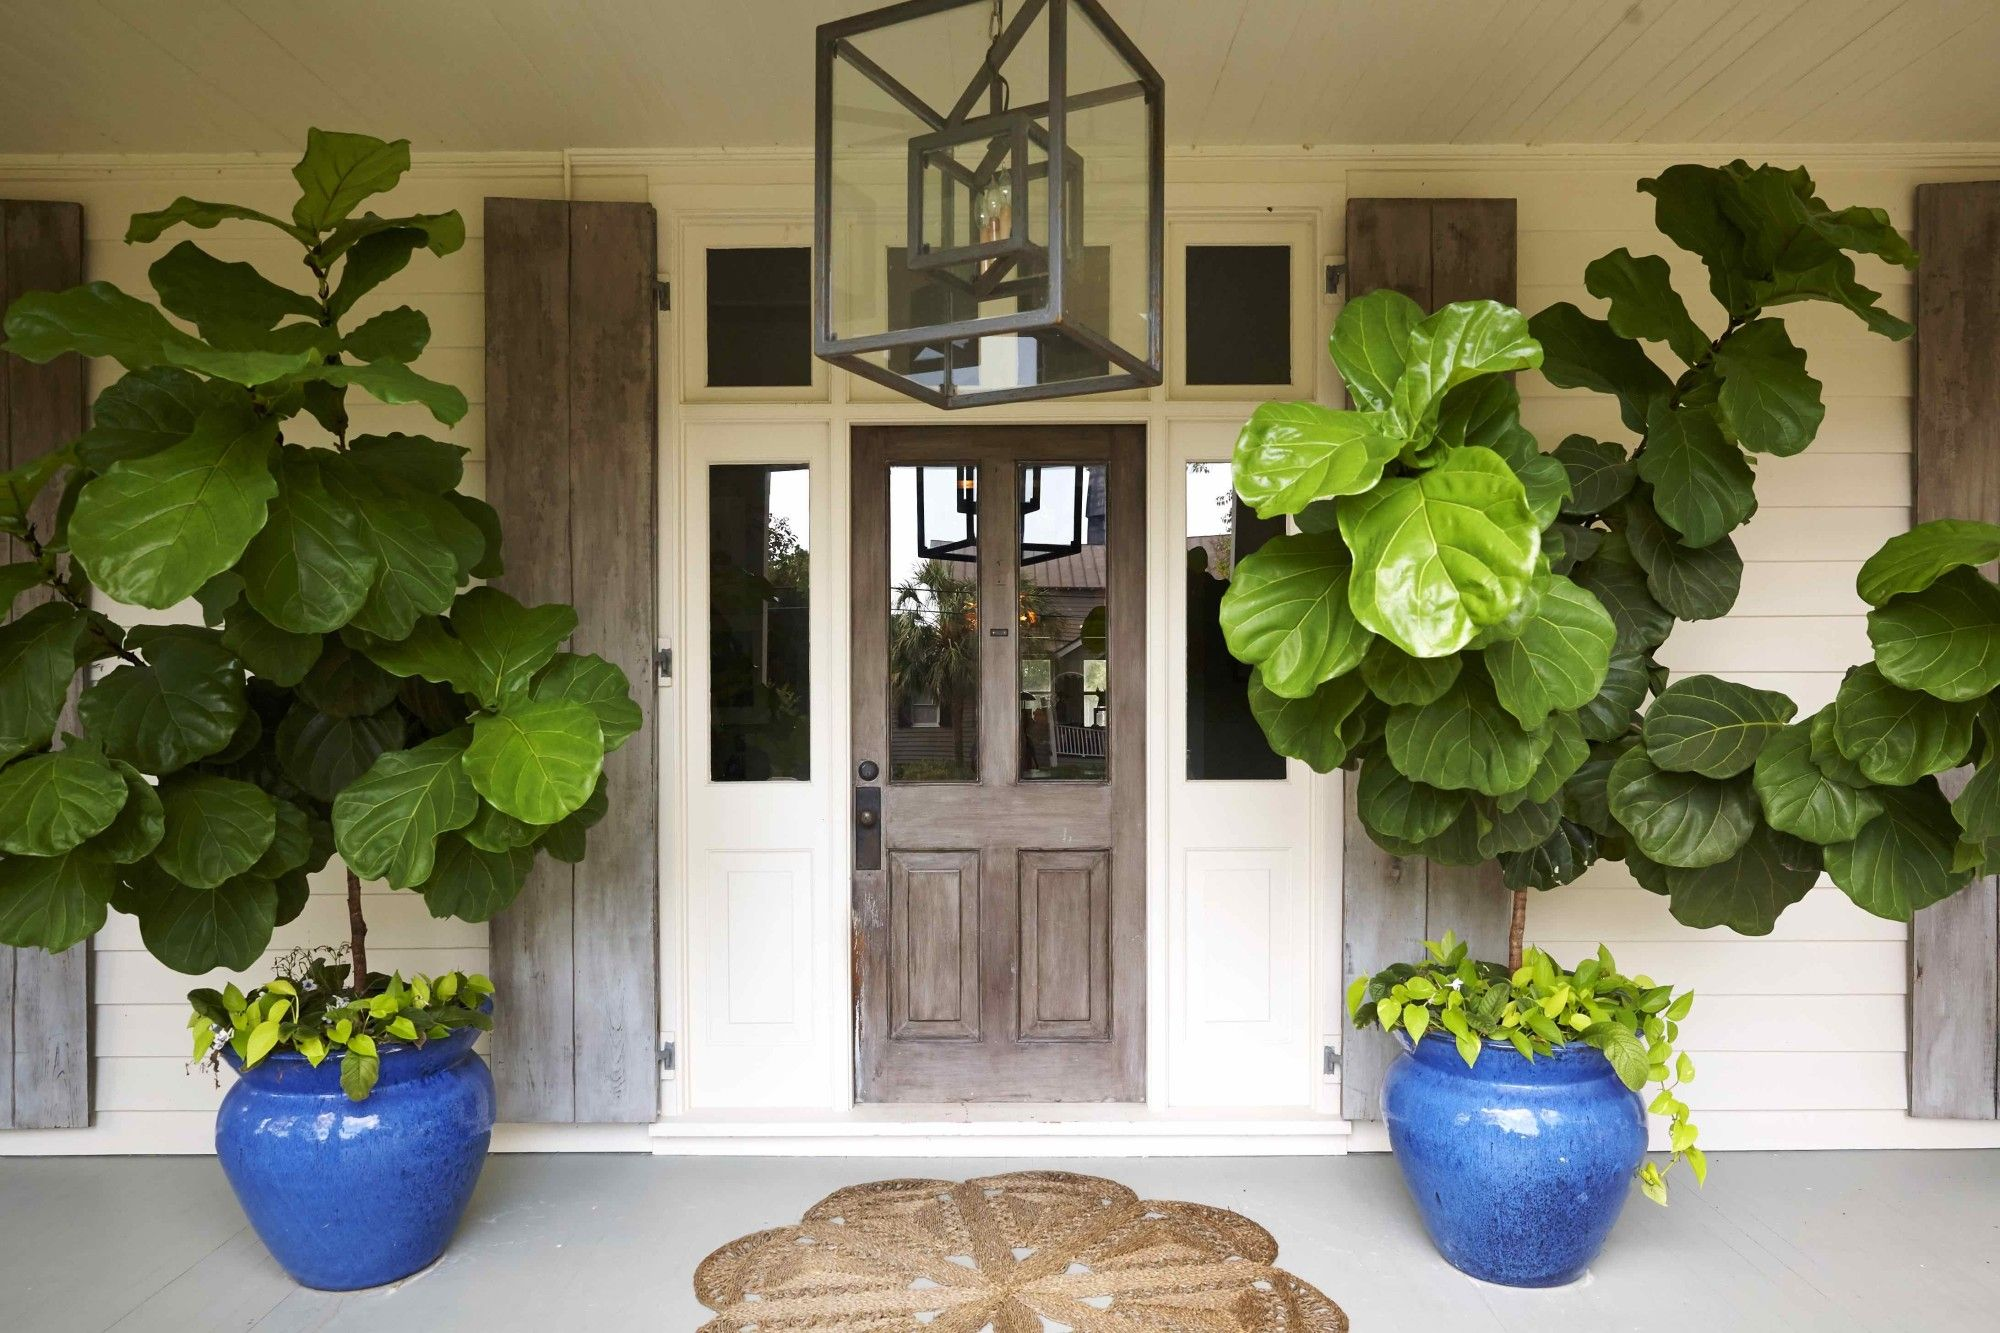 Wow ose are some healthy fiddle leaf fig trees